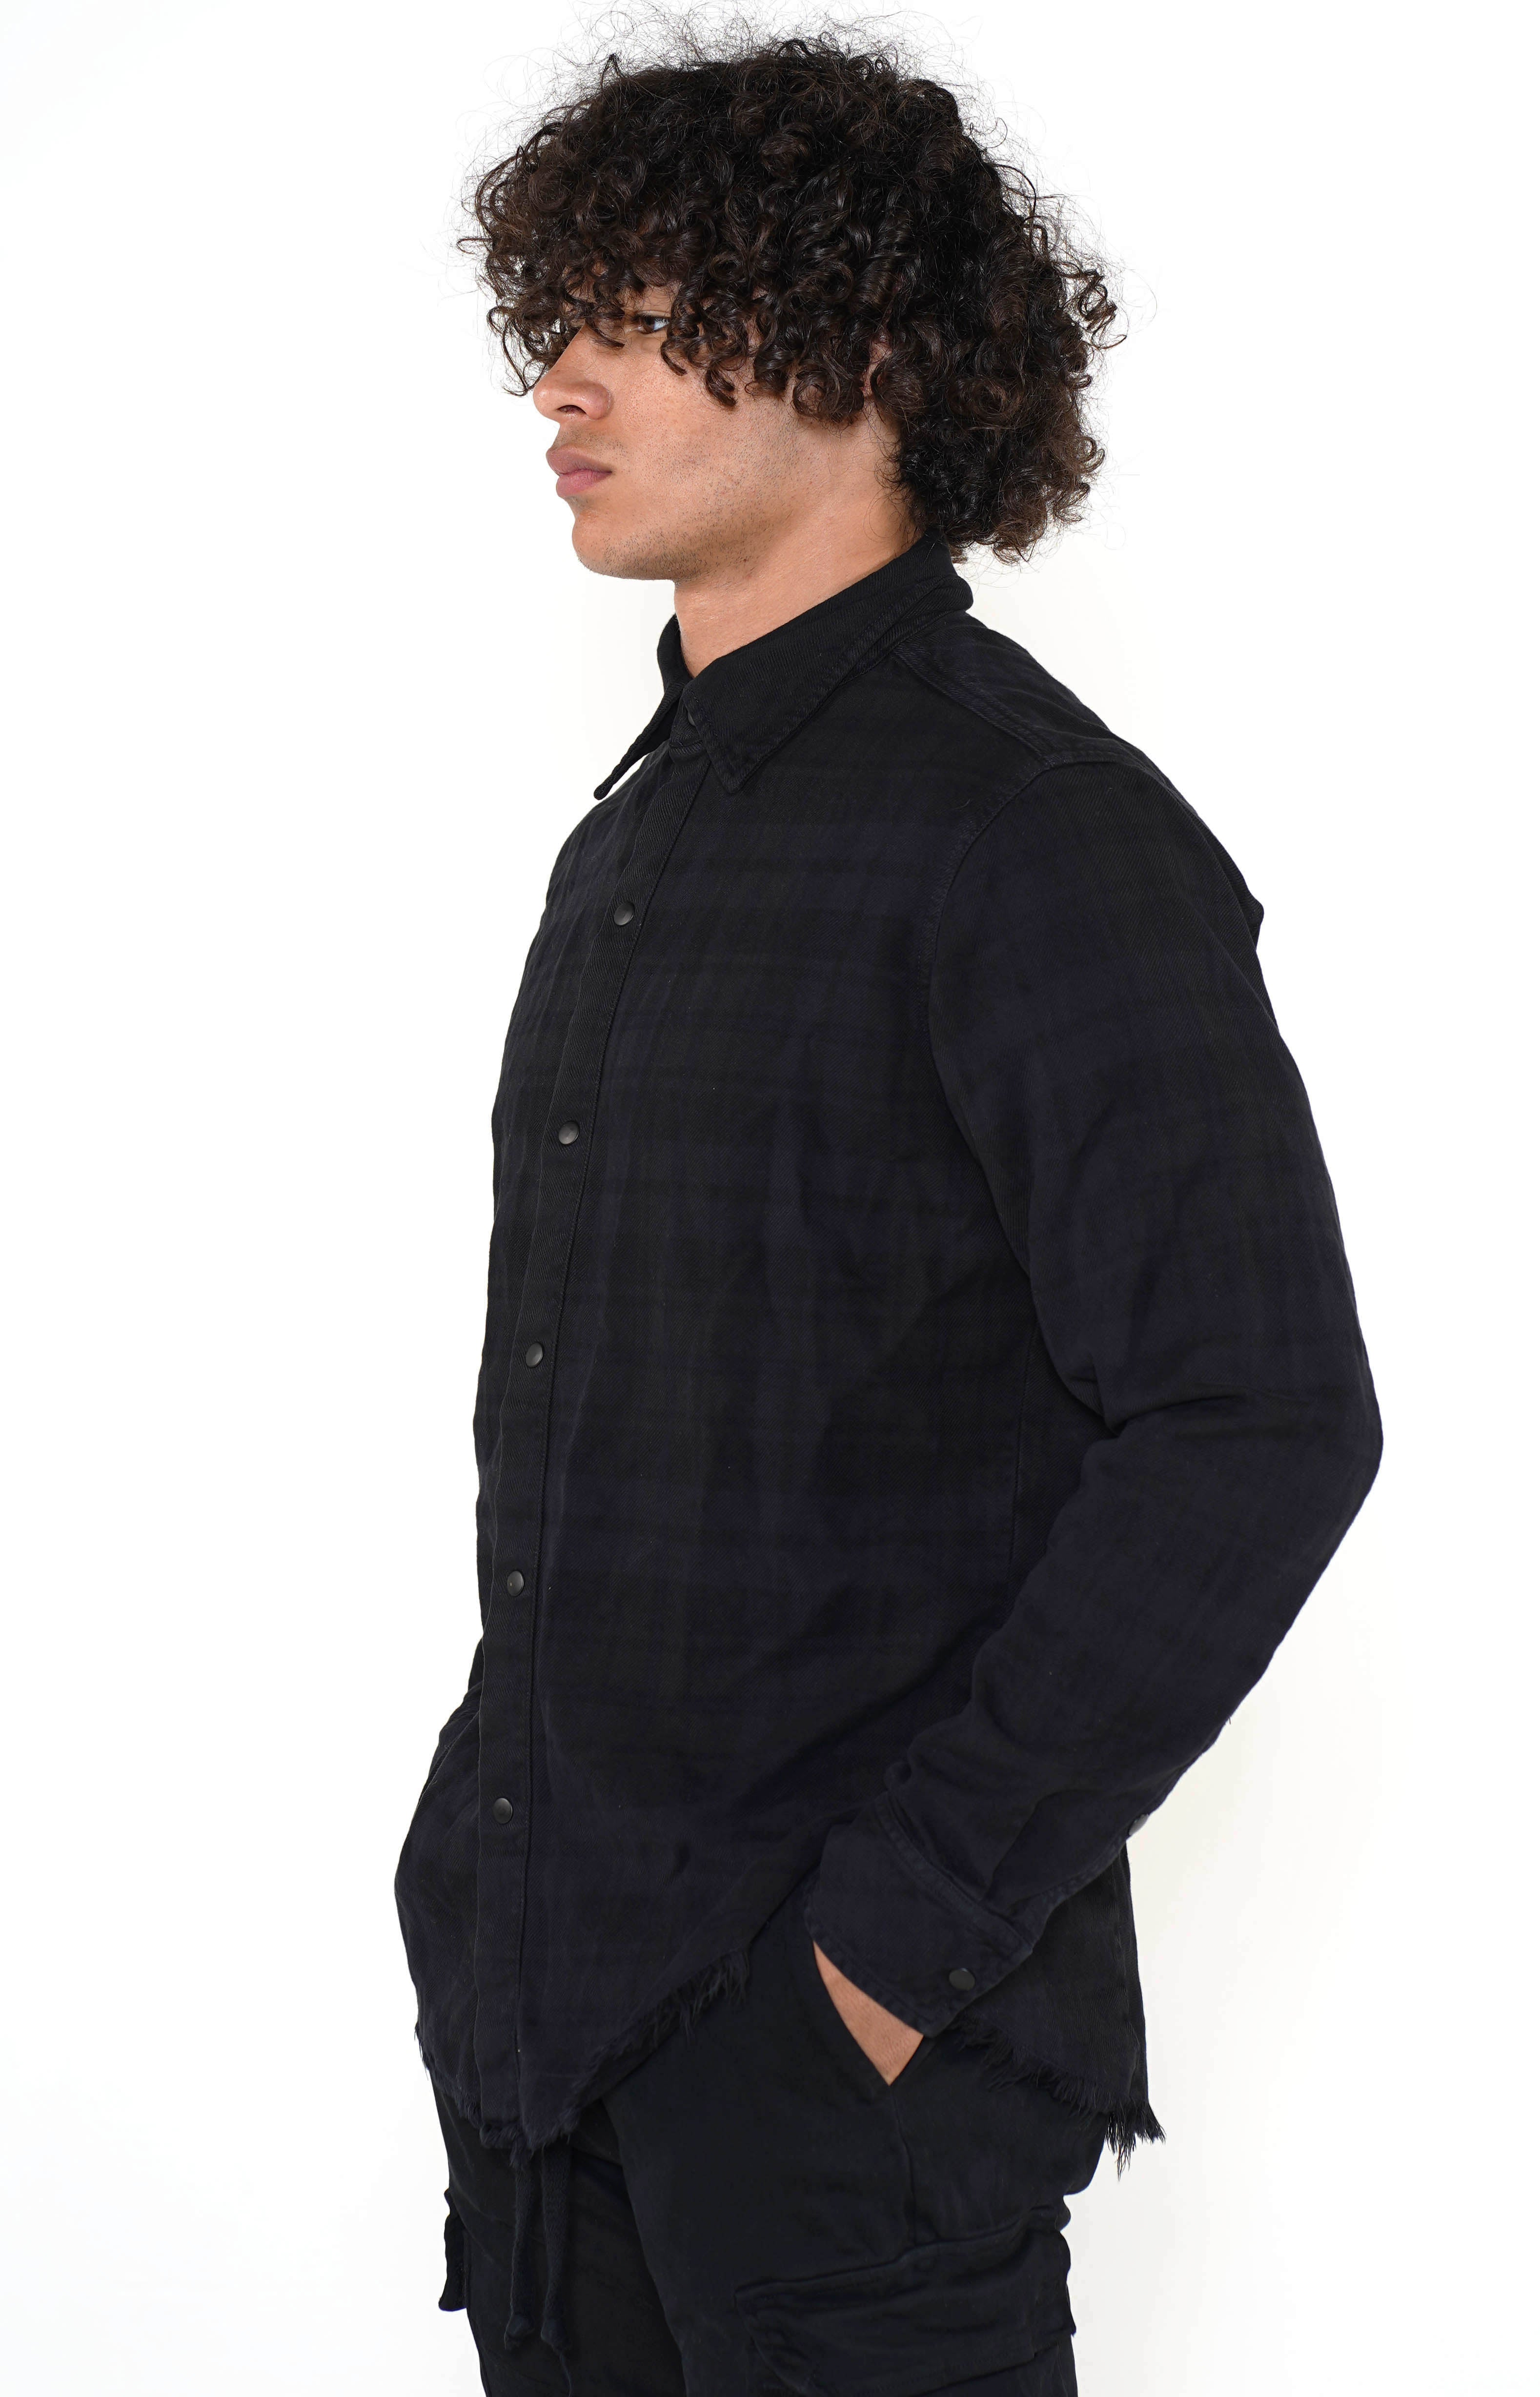 Men's Black Checkered Calligraffiti Flannel - Golden Aesthetics